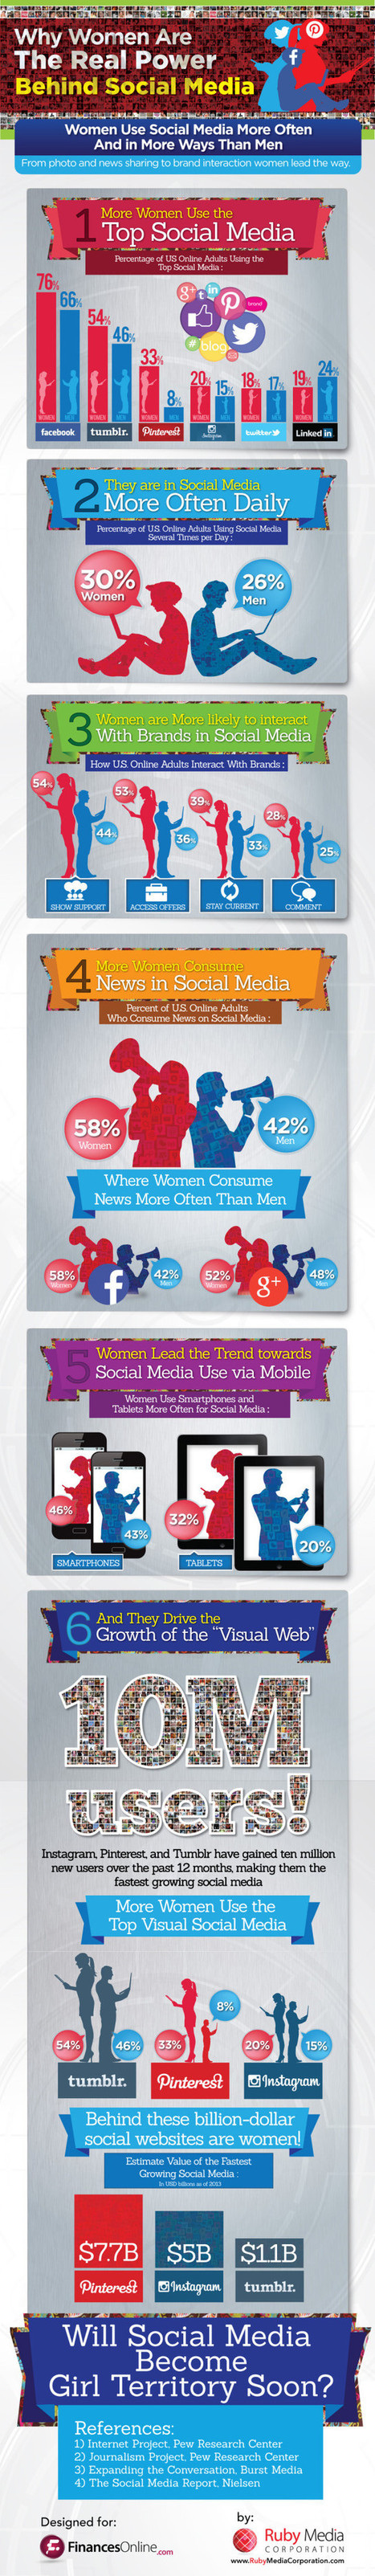 Real Power Behind Social Media? Women [Infographic] - Marketing Technology Blog | Social Marketing Revolution | Scoop.it